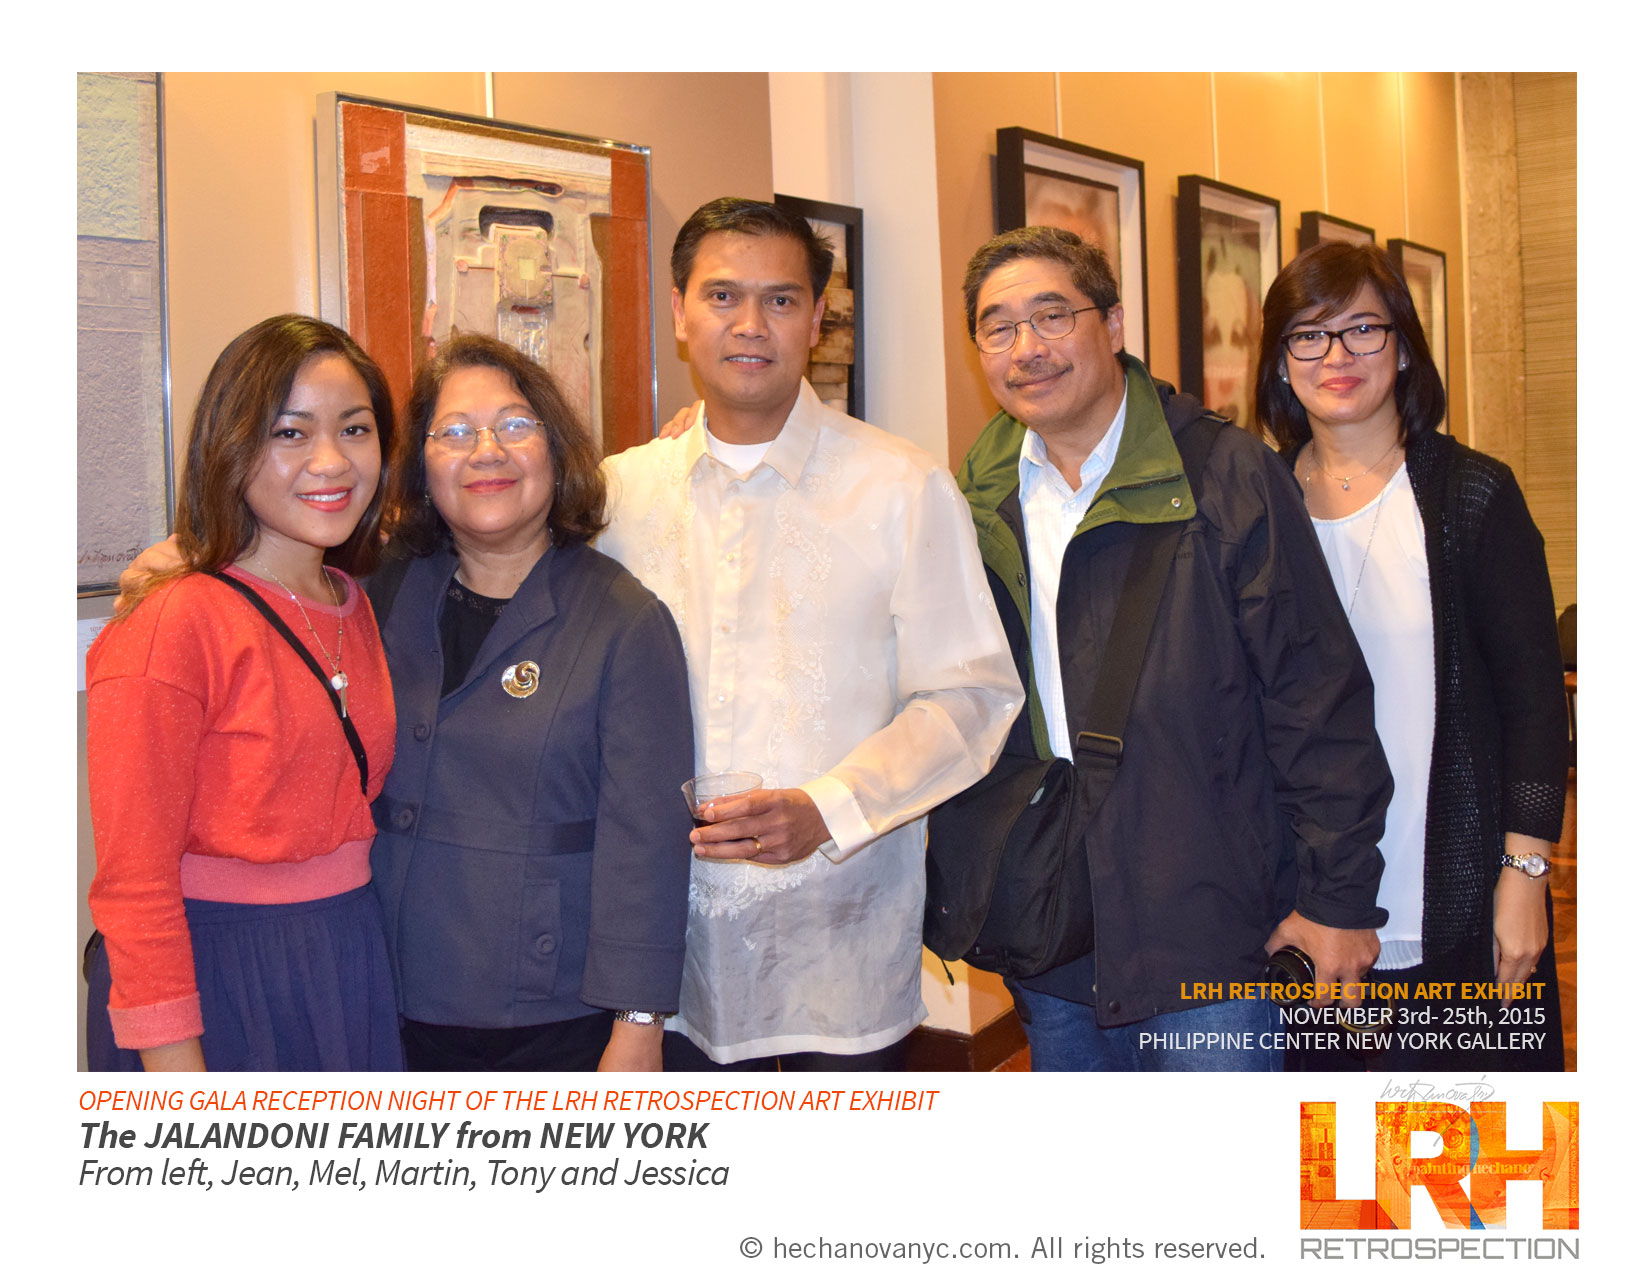 Jalandoni_family on LRH Art Exhibit